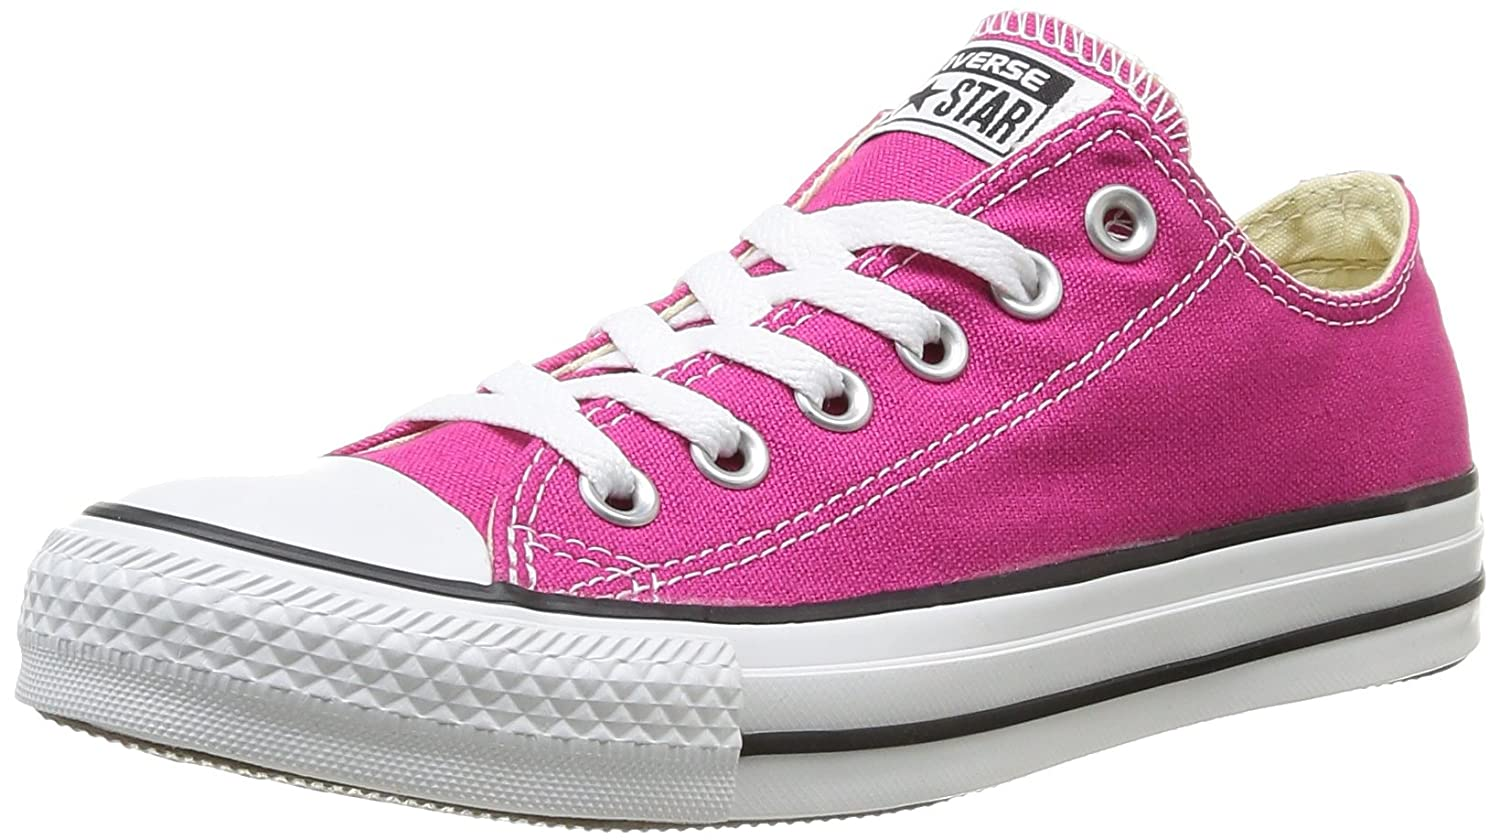 Converse Chuck Taylor Mixte All 12657 Star Core, Baskets Mixte B00M4BGSX6 Adulte Rose 39f7730 - robotanarchy.space